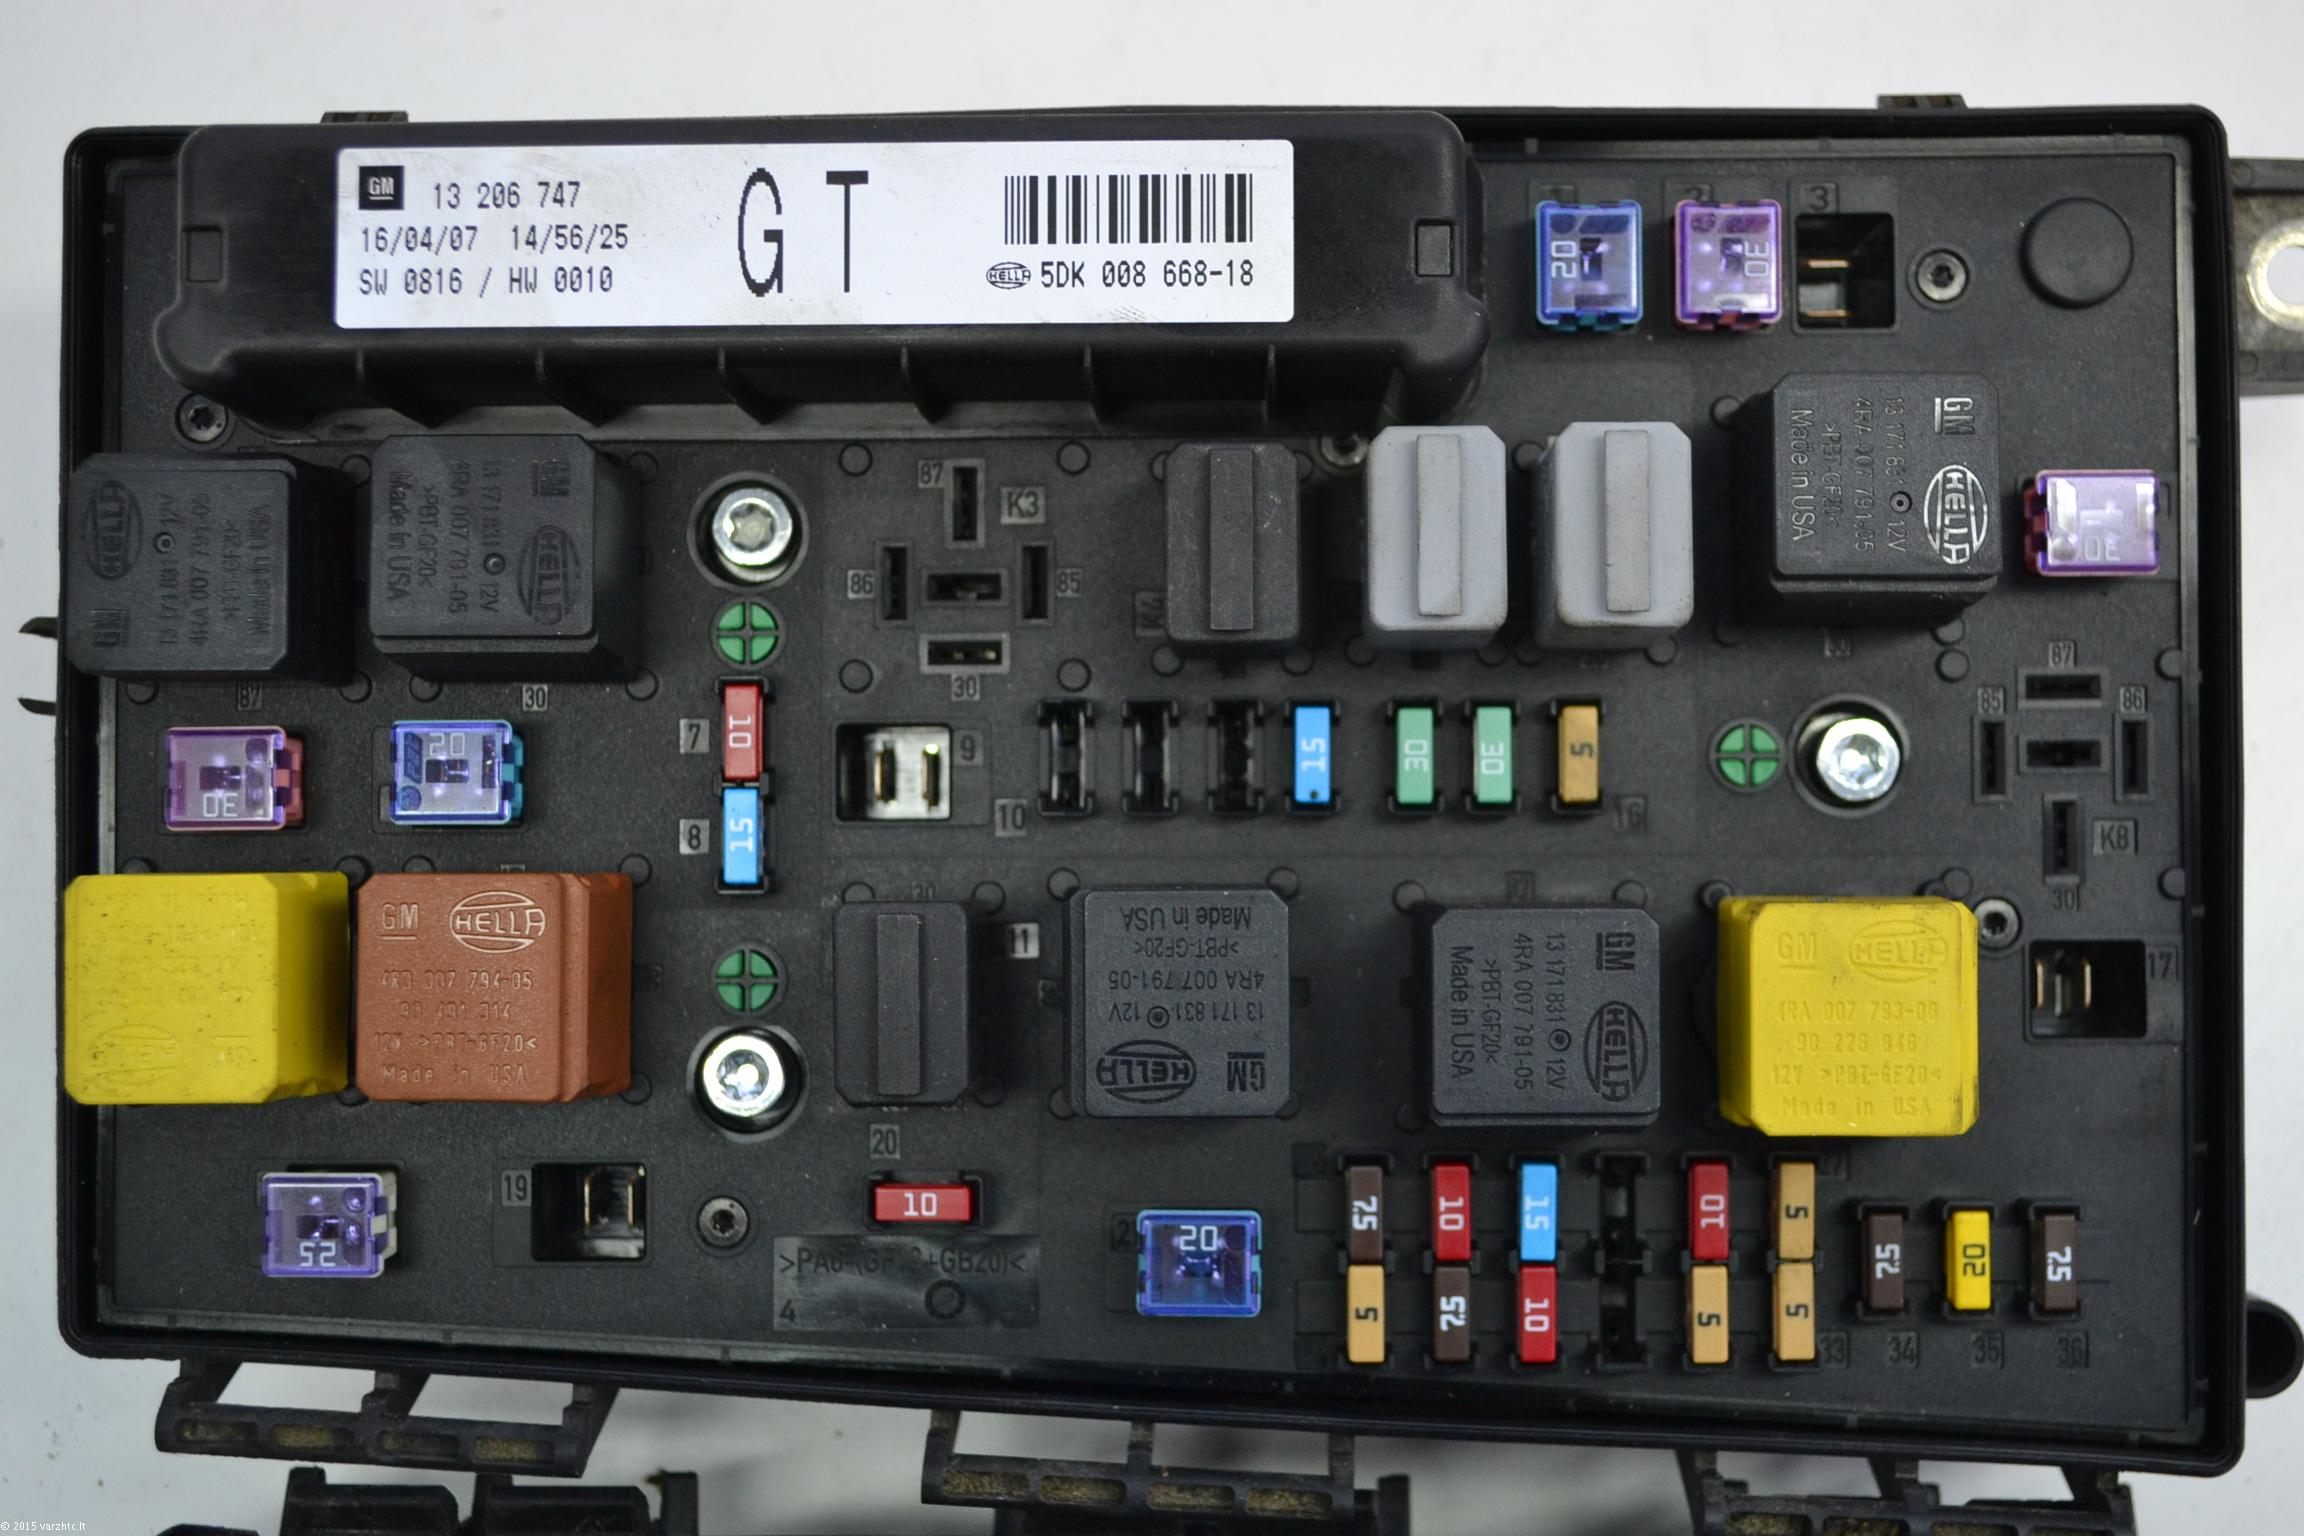 astra g fuse panel mm 3539  astra envoy fuse box download diagram  astra envoy fuse box download diagram